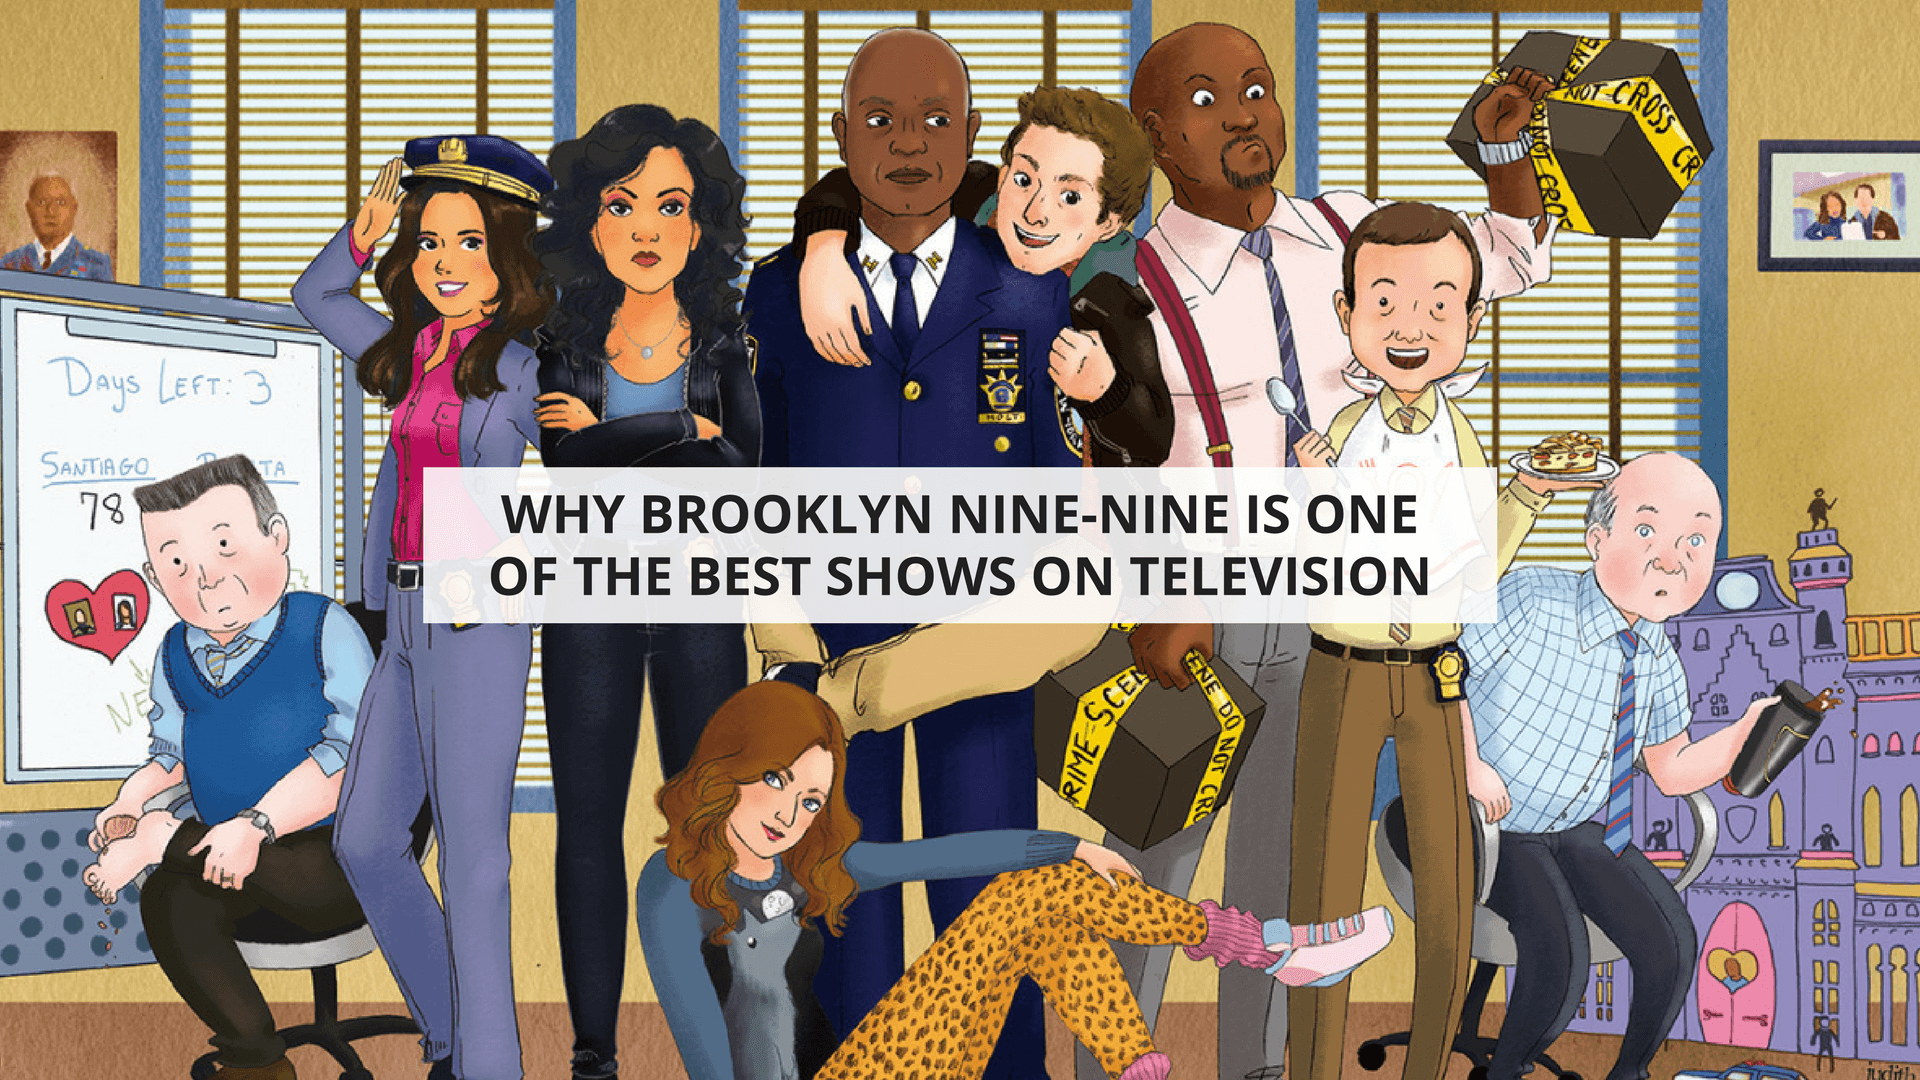 Why Brooklyn Nine-Nine is One of the Best Shows on Television ...